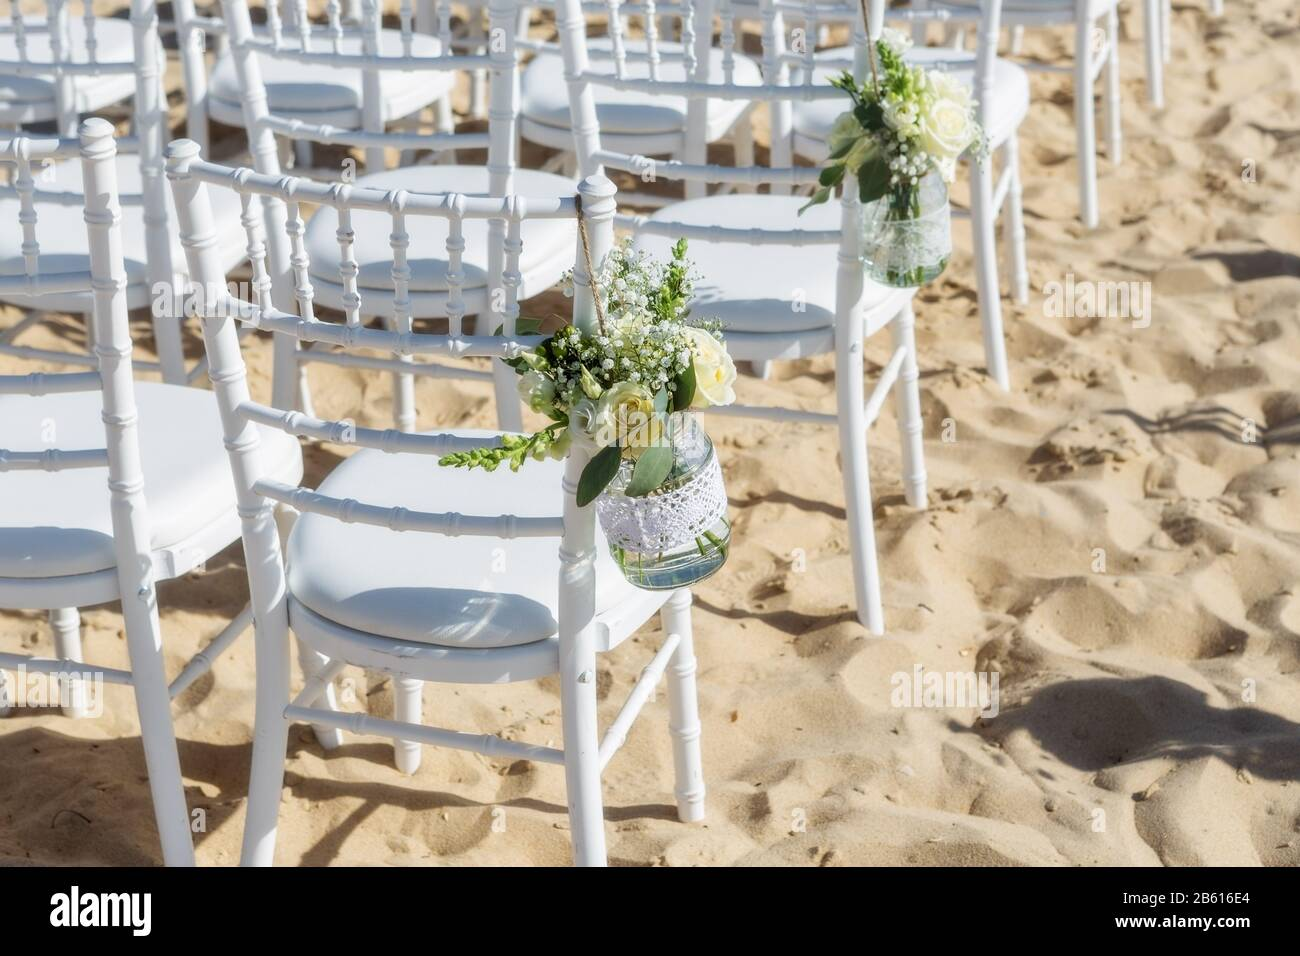 Decoration Flowers For A Wedding Ceremony Chairs For Guests Stock Photo Alamy